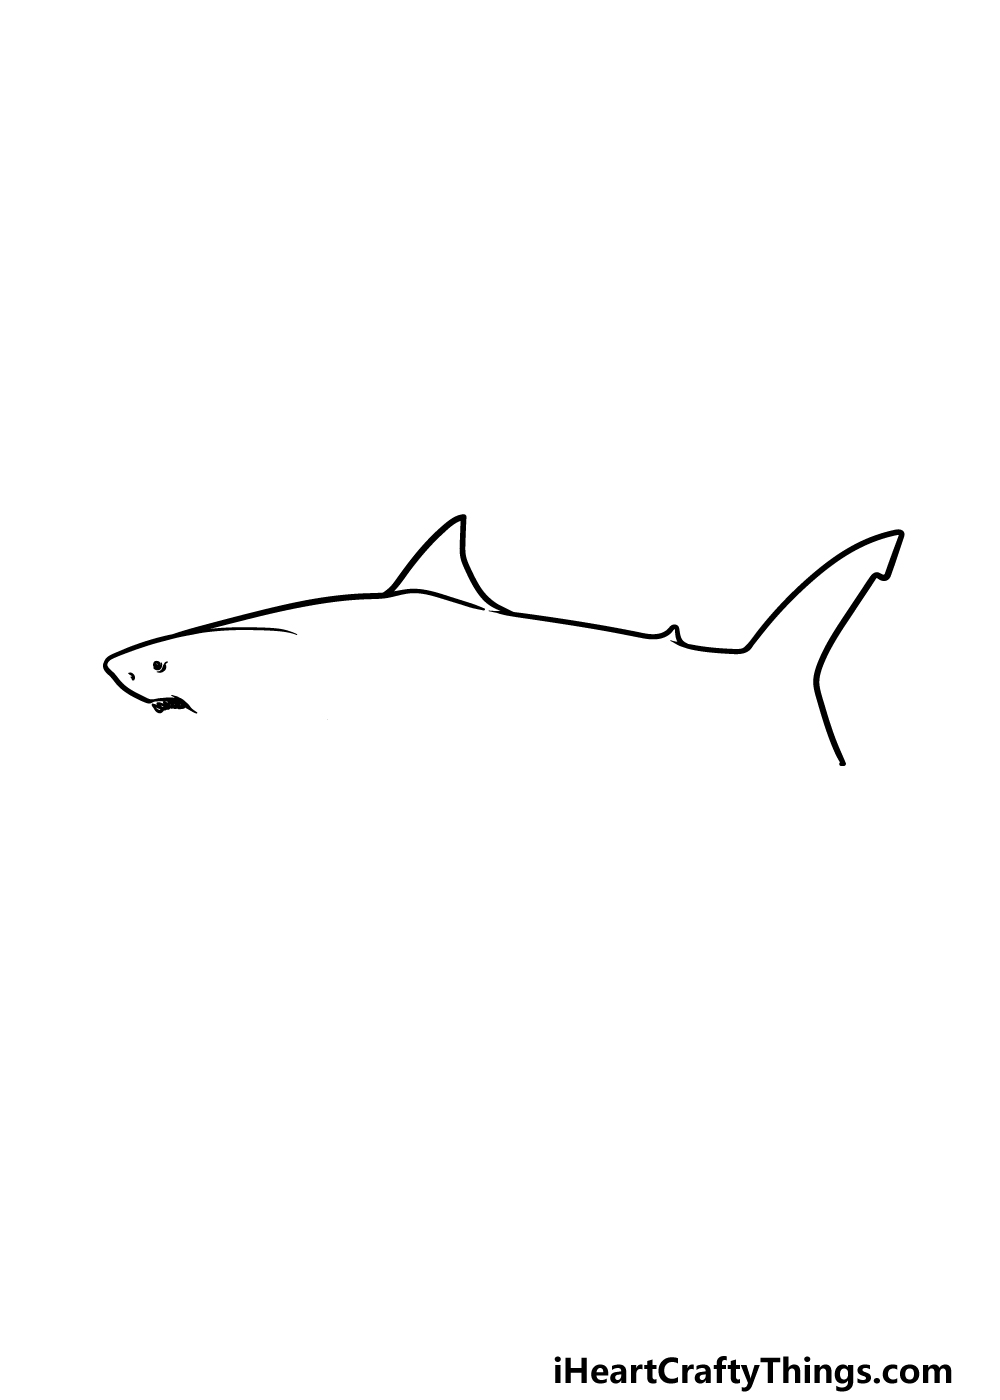 drawing a megalodon step 3